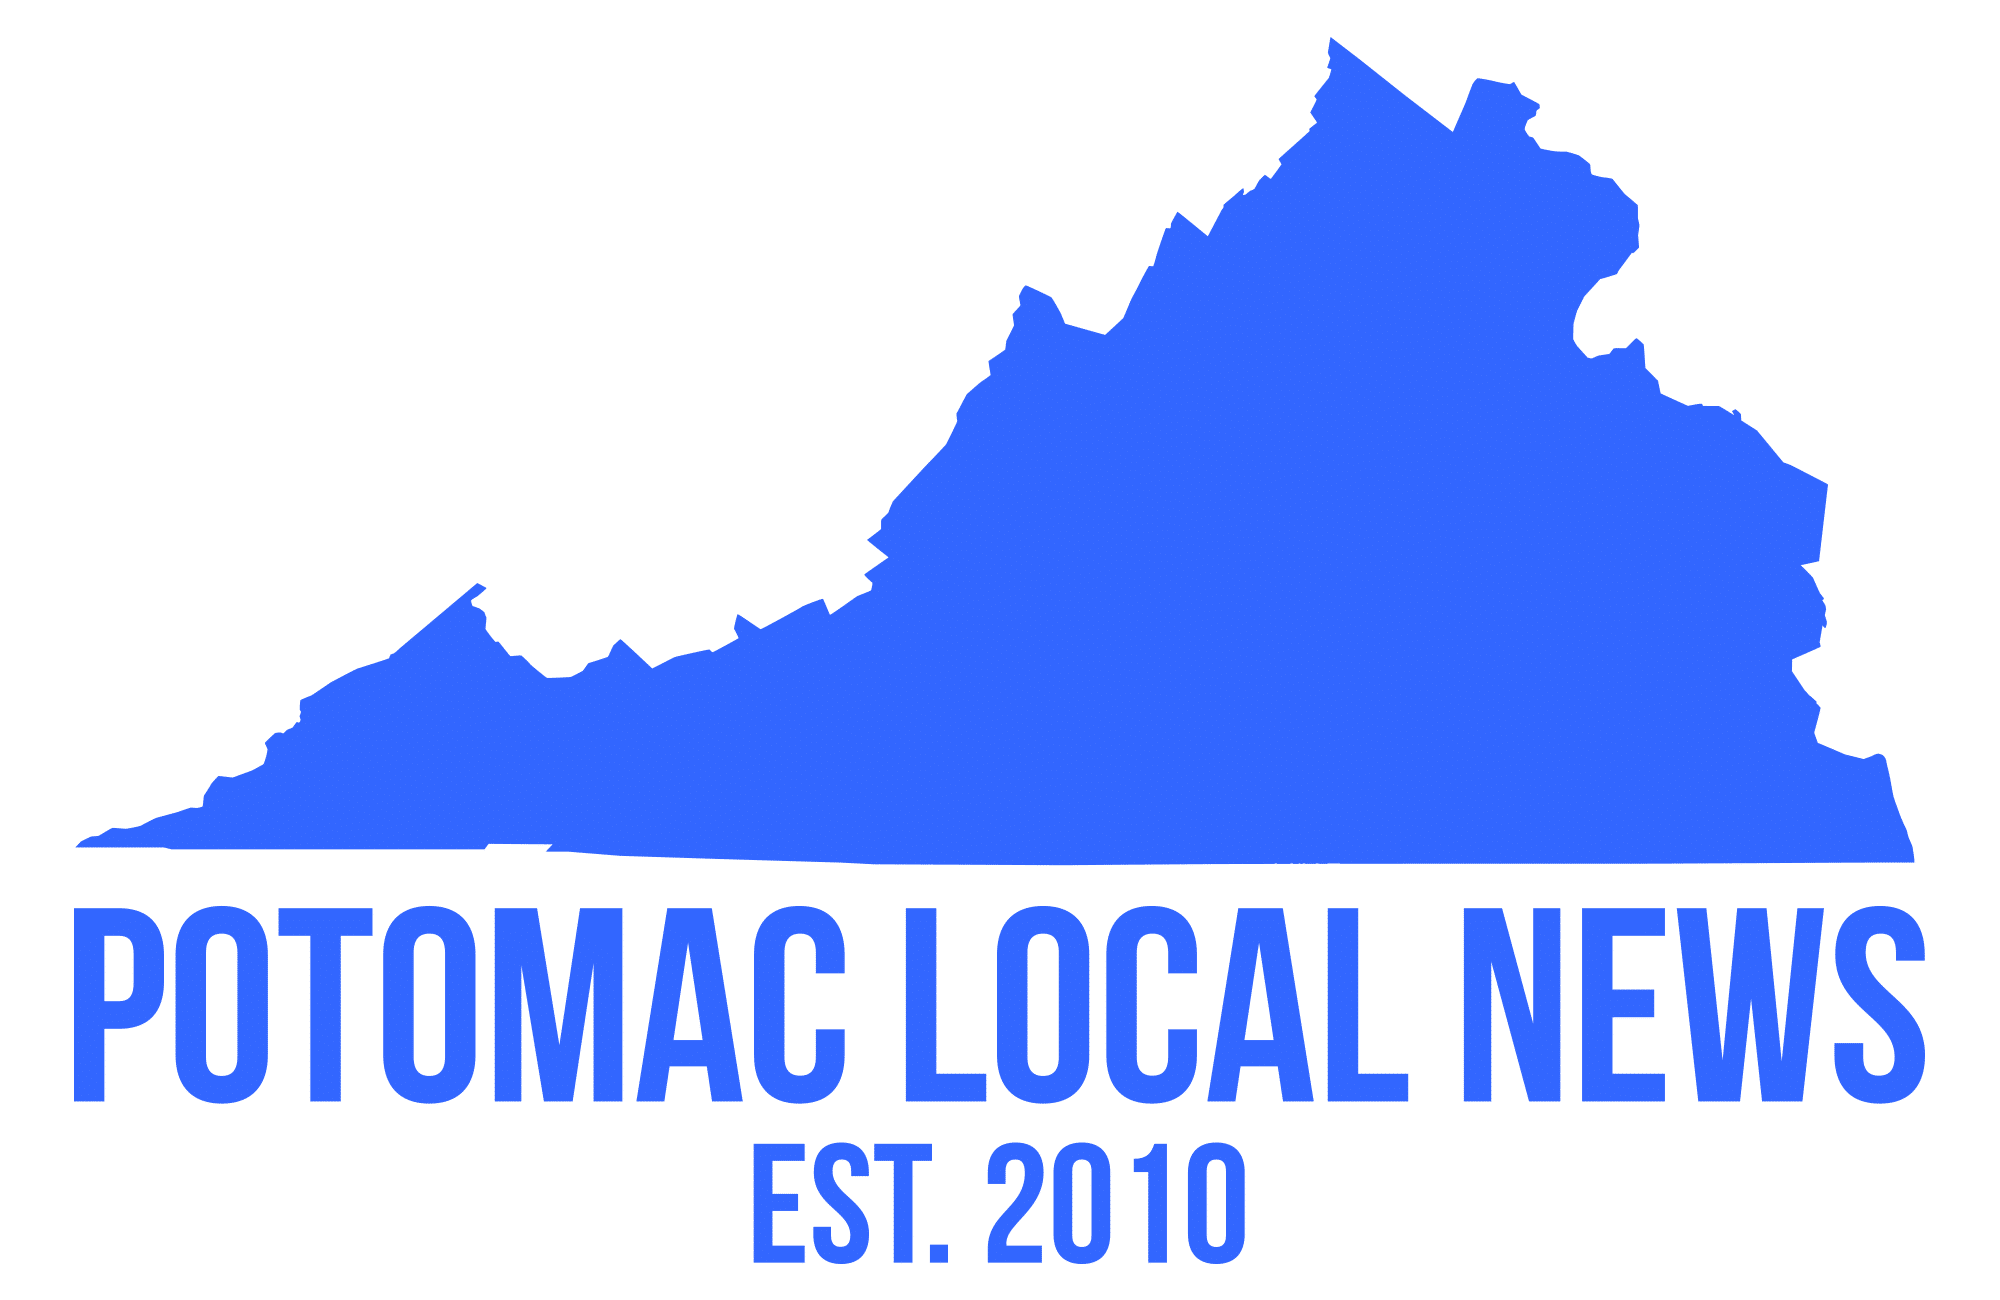 potomac local news logo